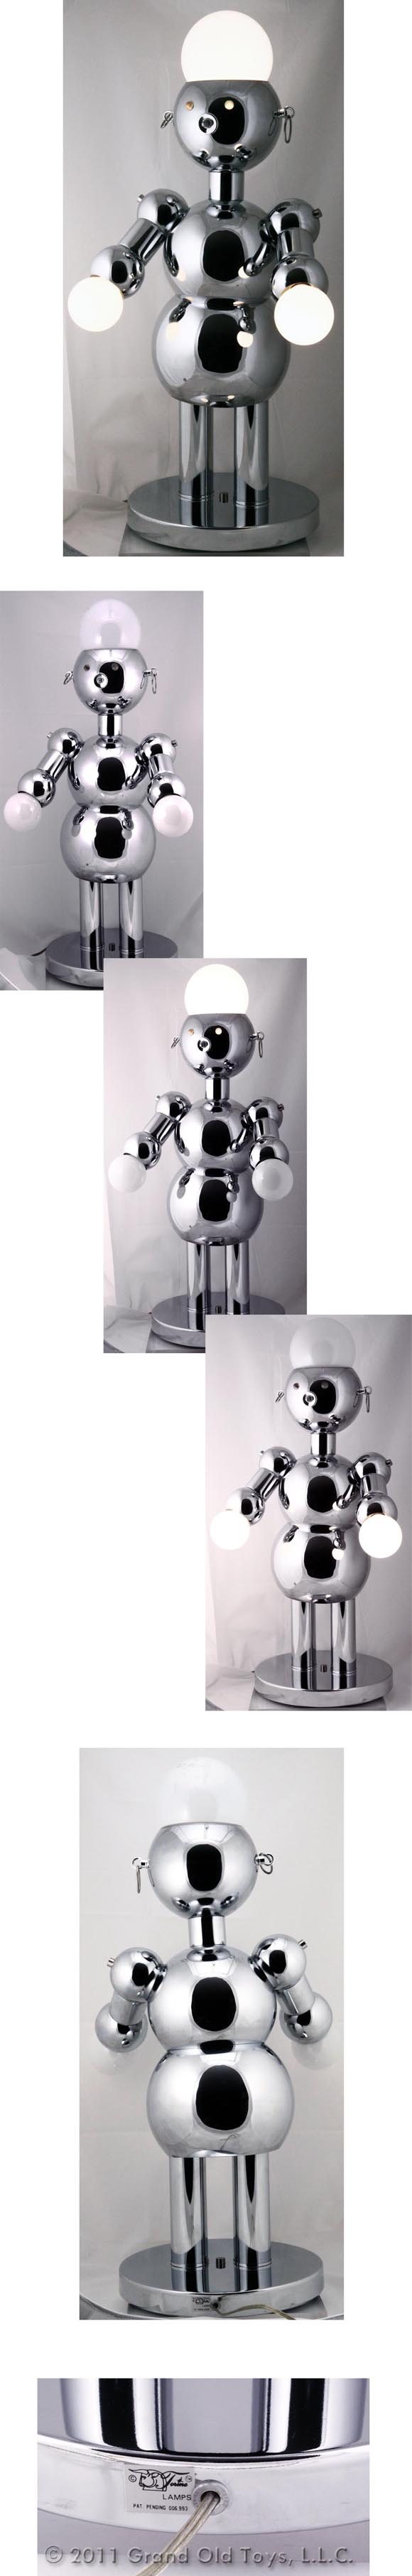 holmes robot desk pictures lamp black table nice best large touch portfolio